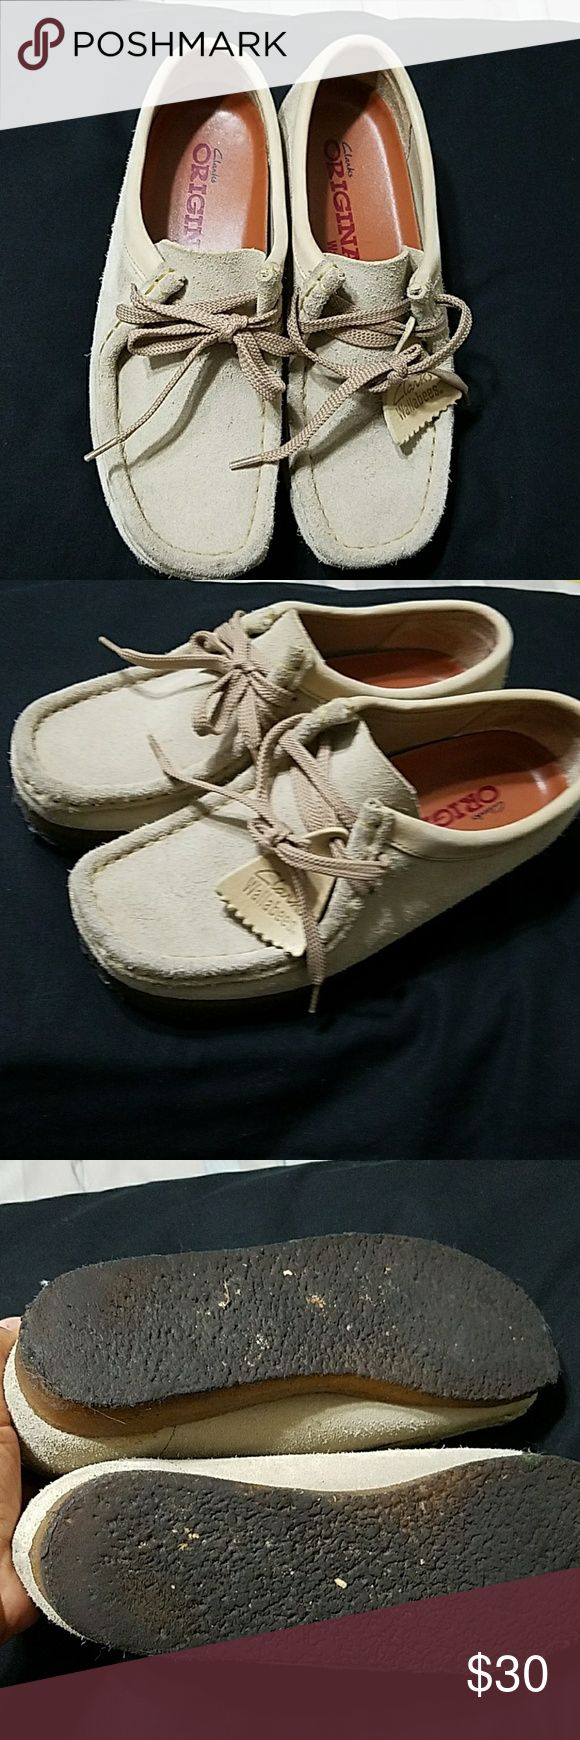 Clarks Wallabees shoes Good condition sz 7M very clean inside Clarks Shoes Flats & Loafers